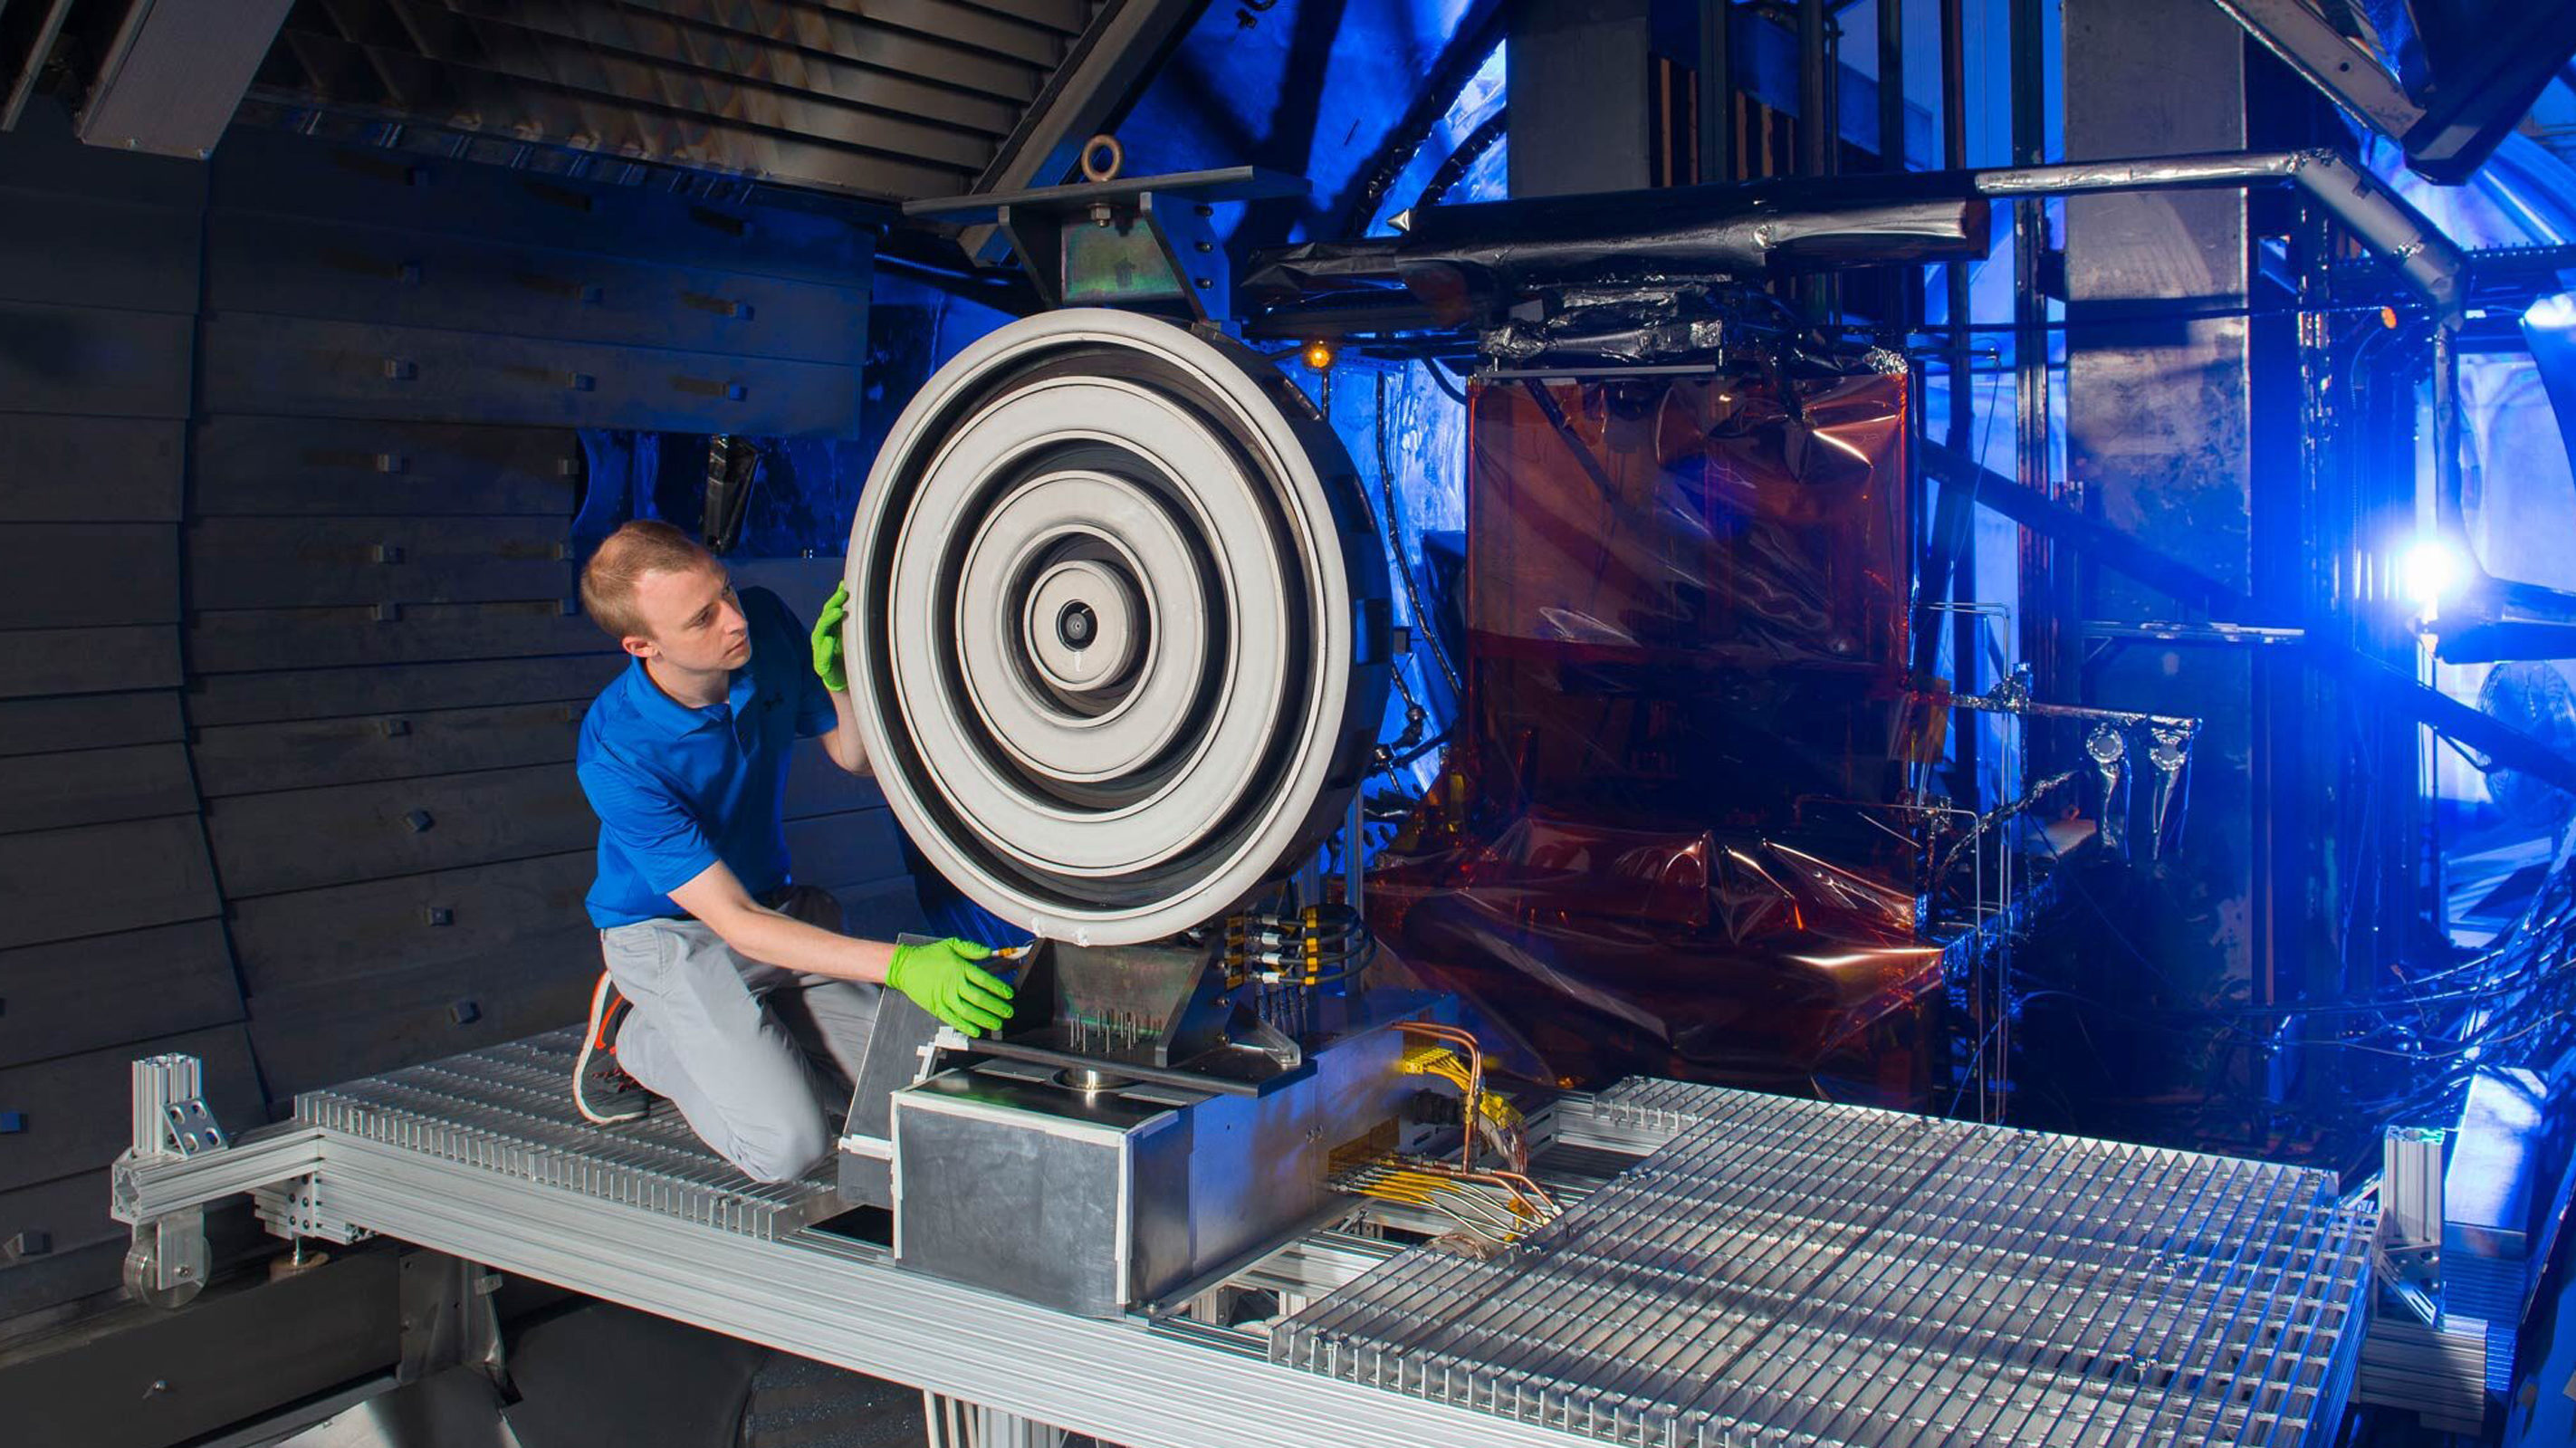 Scott Hall, former doctoral student in aerospace engineering at the University of Michigan, adjusts the record-setting X3 thruster at NASA Glenn Research Center in 2017.